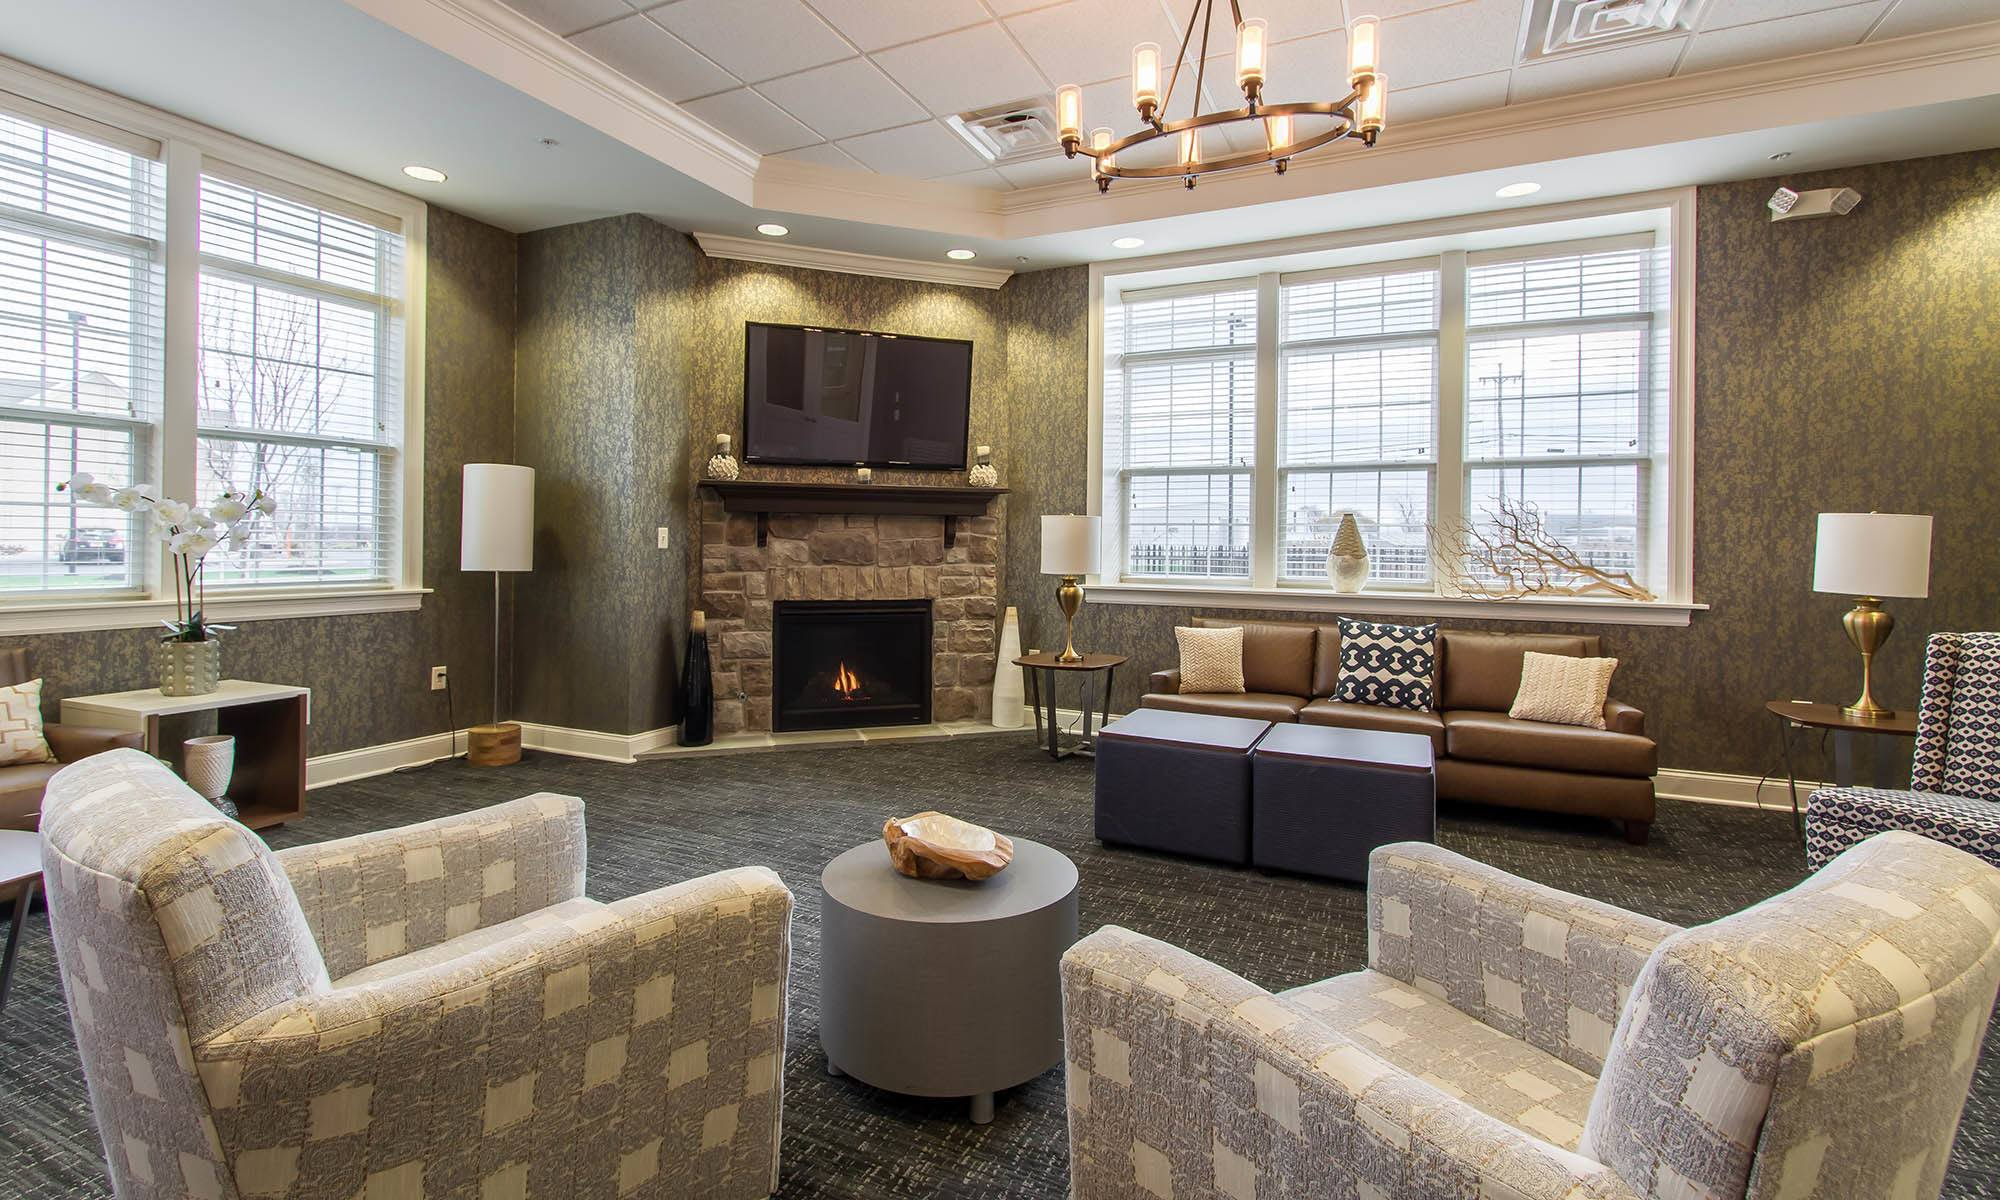 Apartments in Rochester, New York